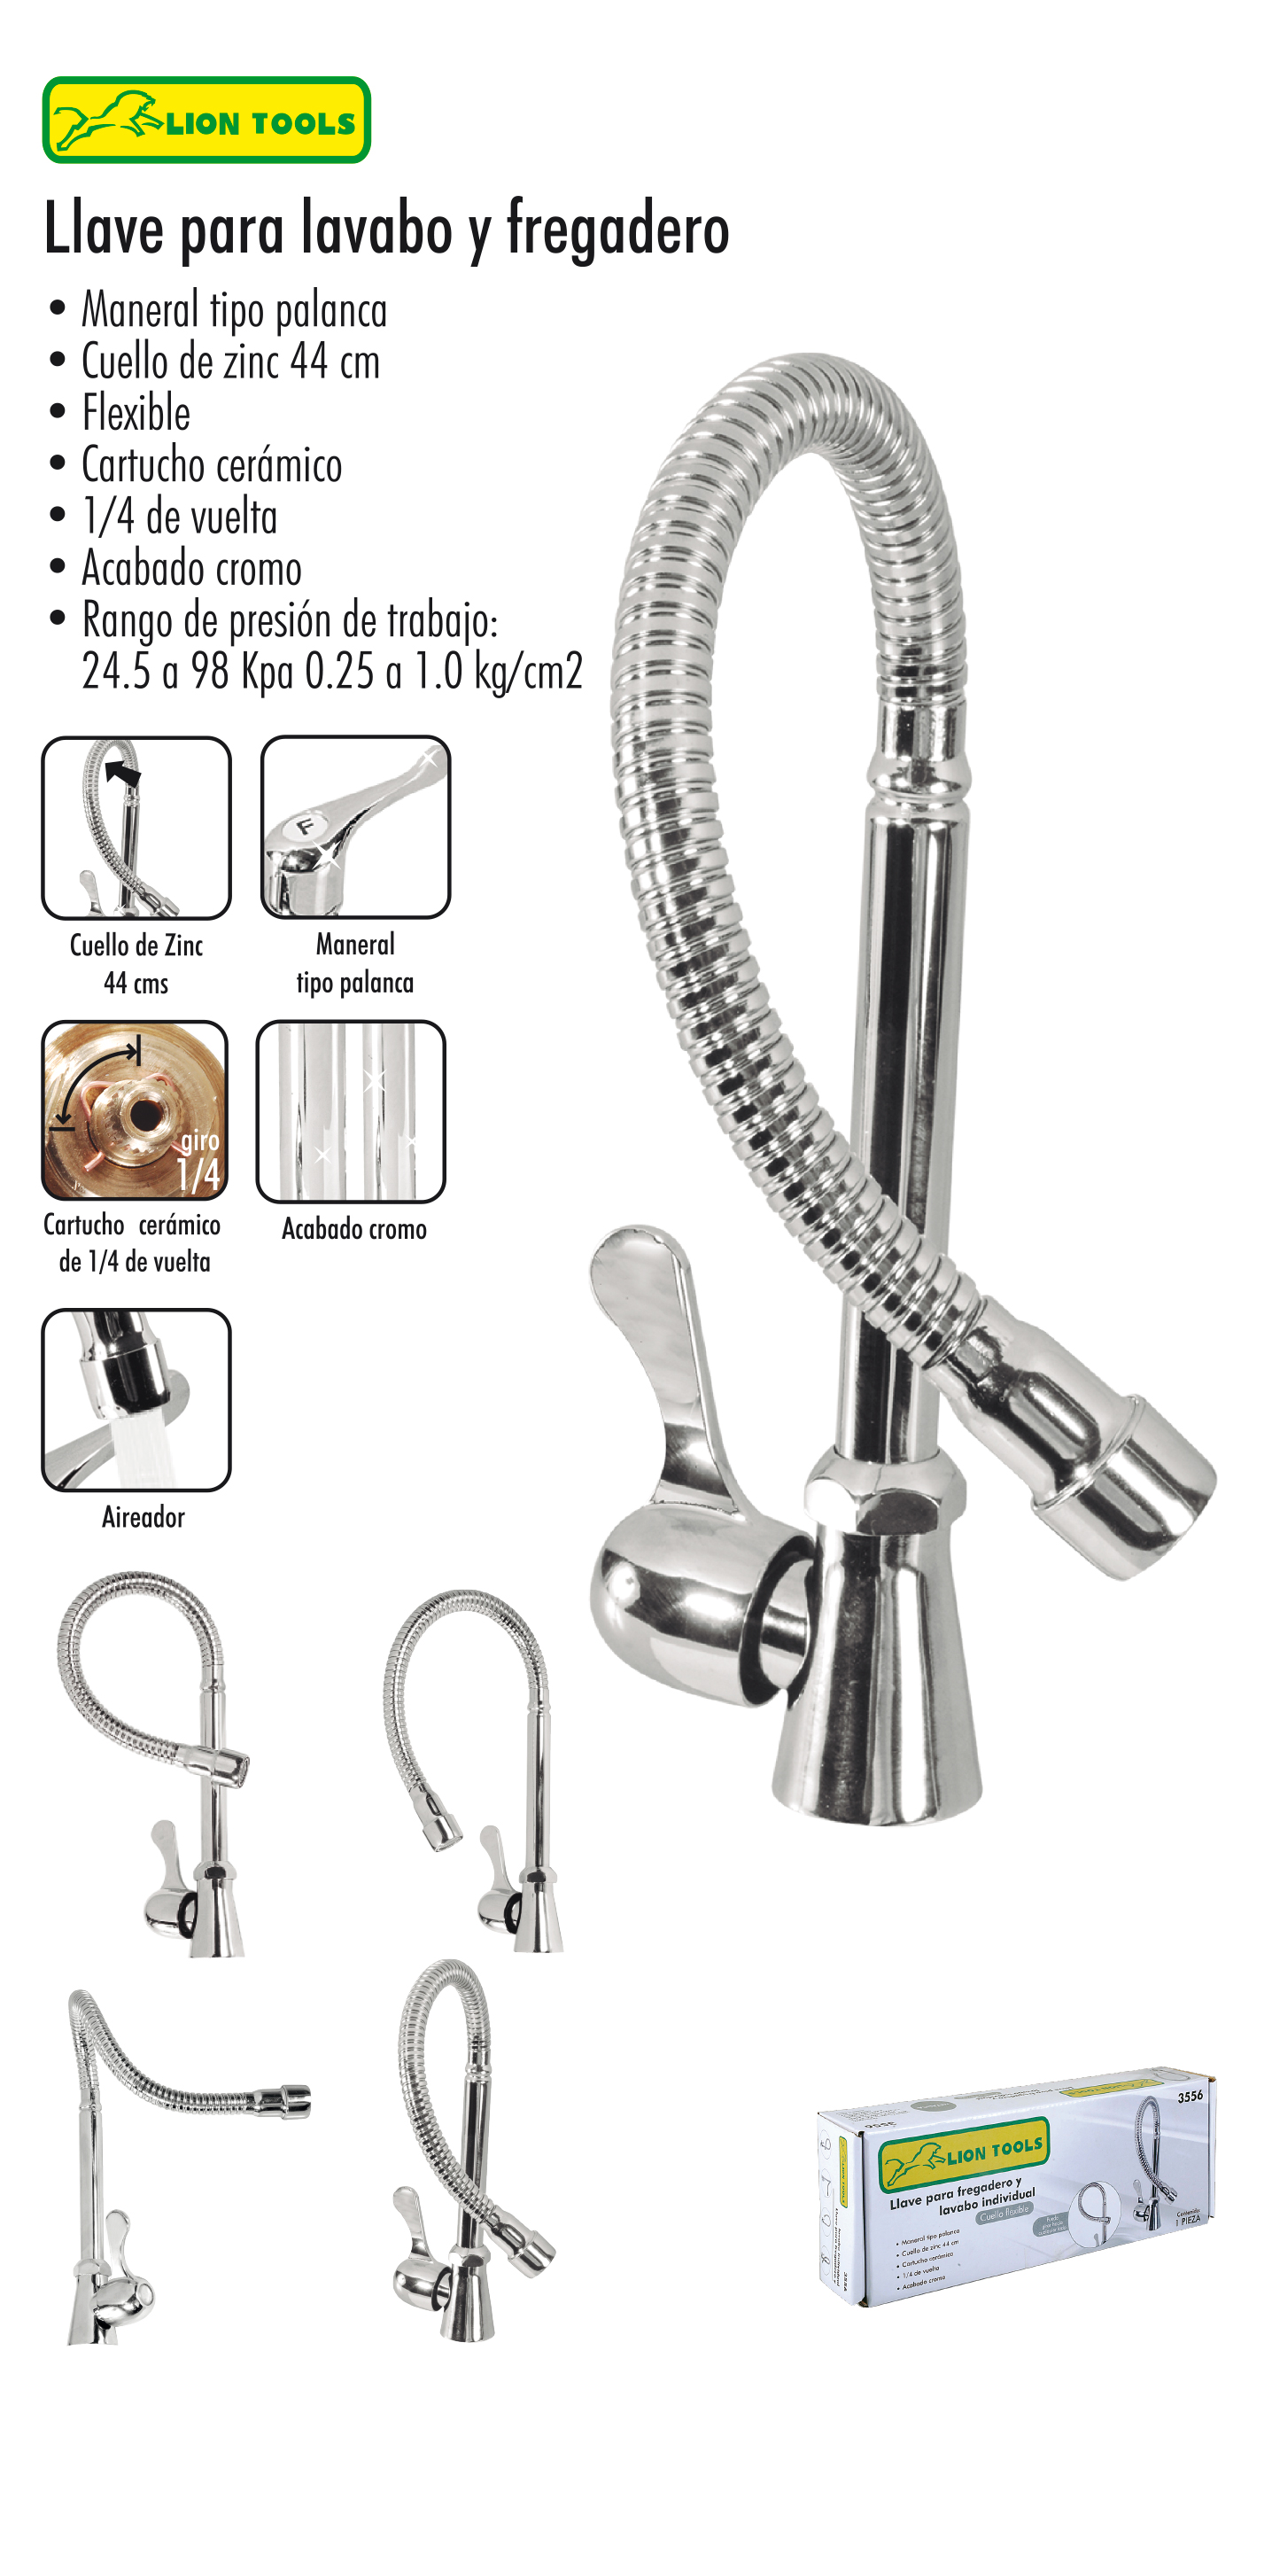 Mezcladora Lavabo y Fregadero cuello Flexible LION TOOLS